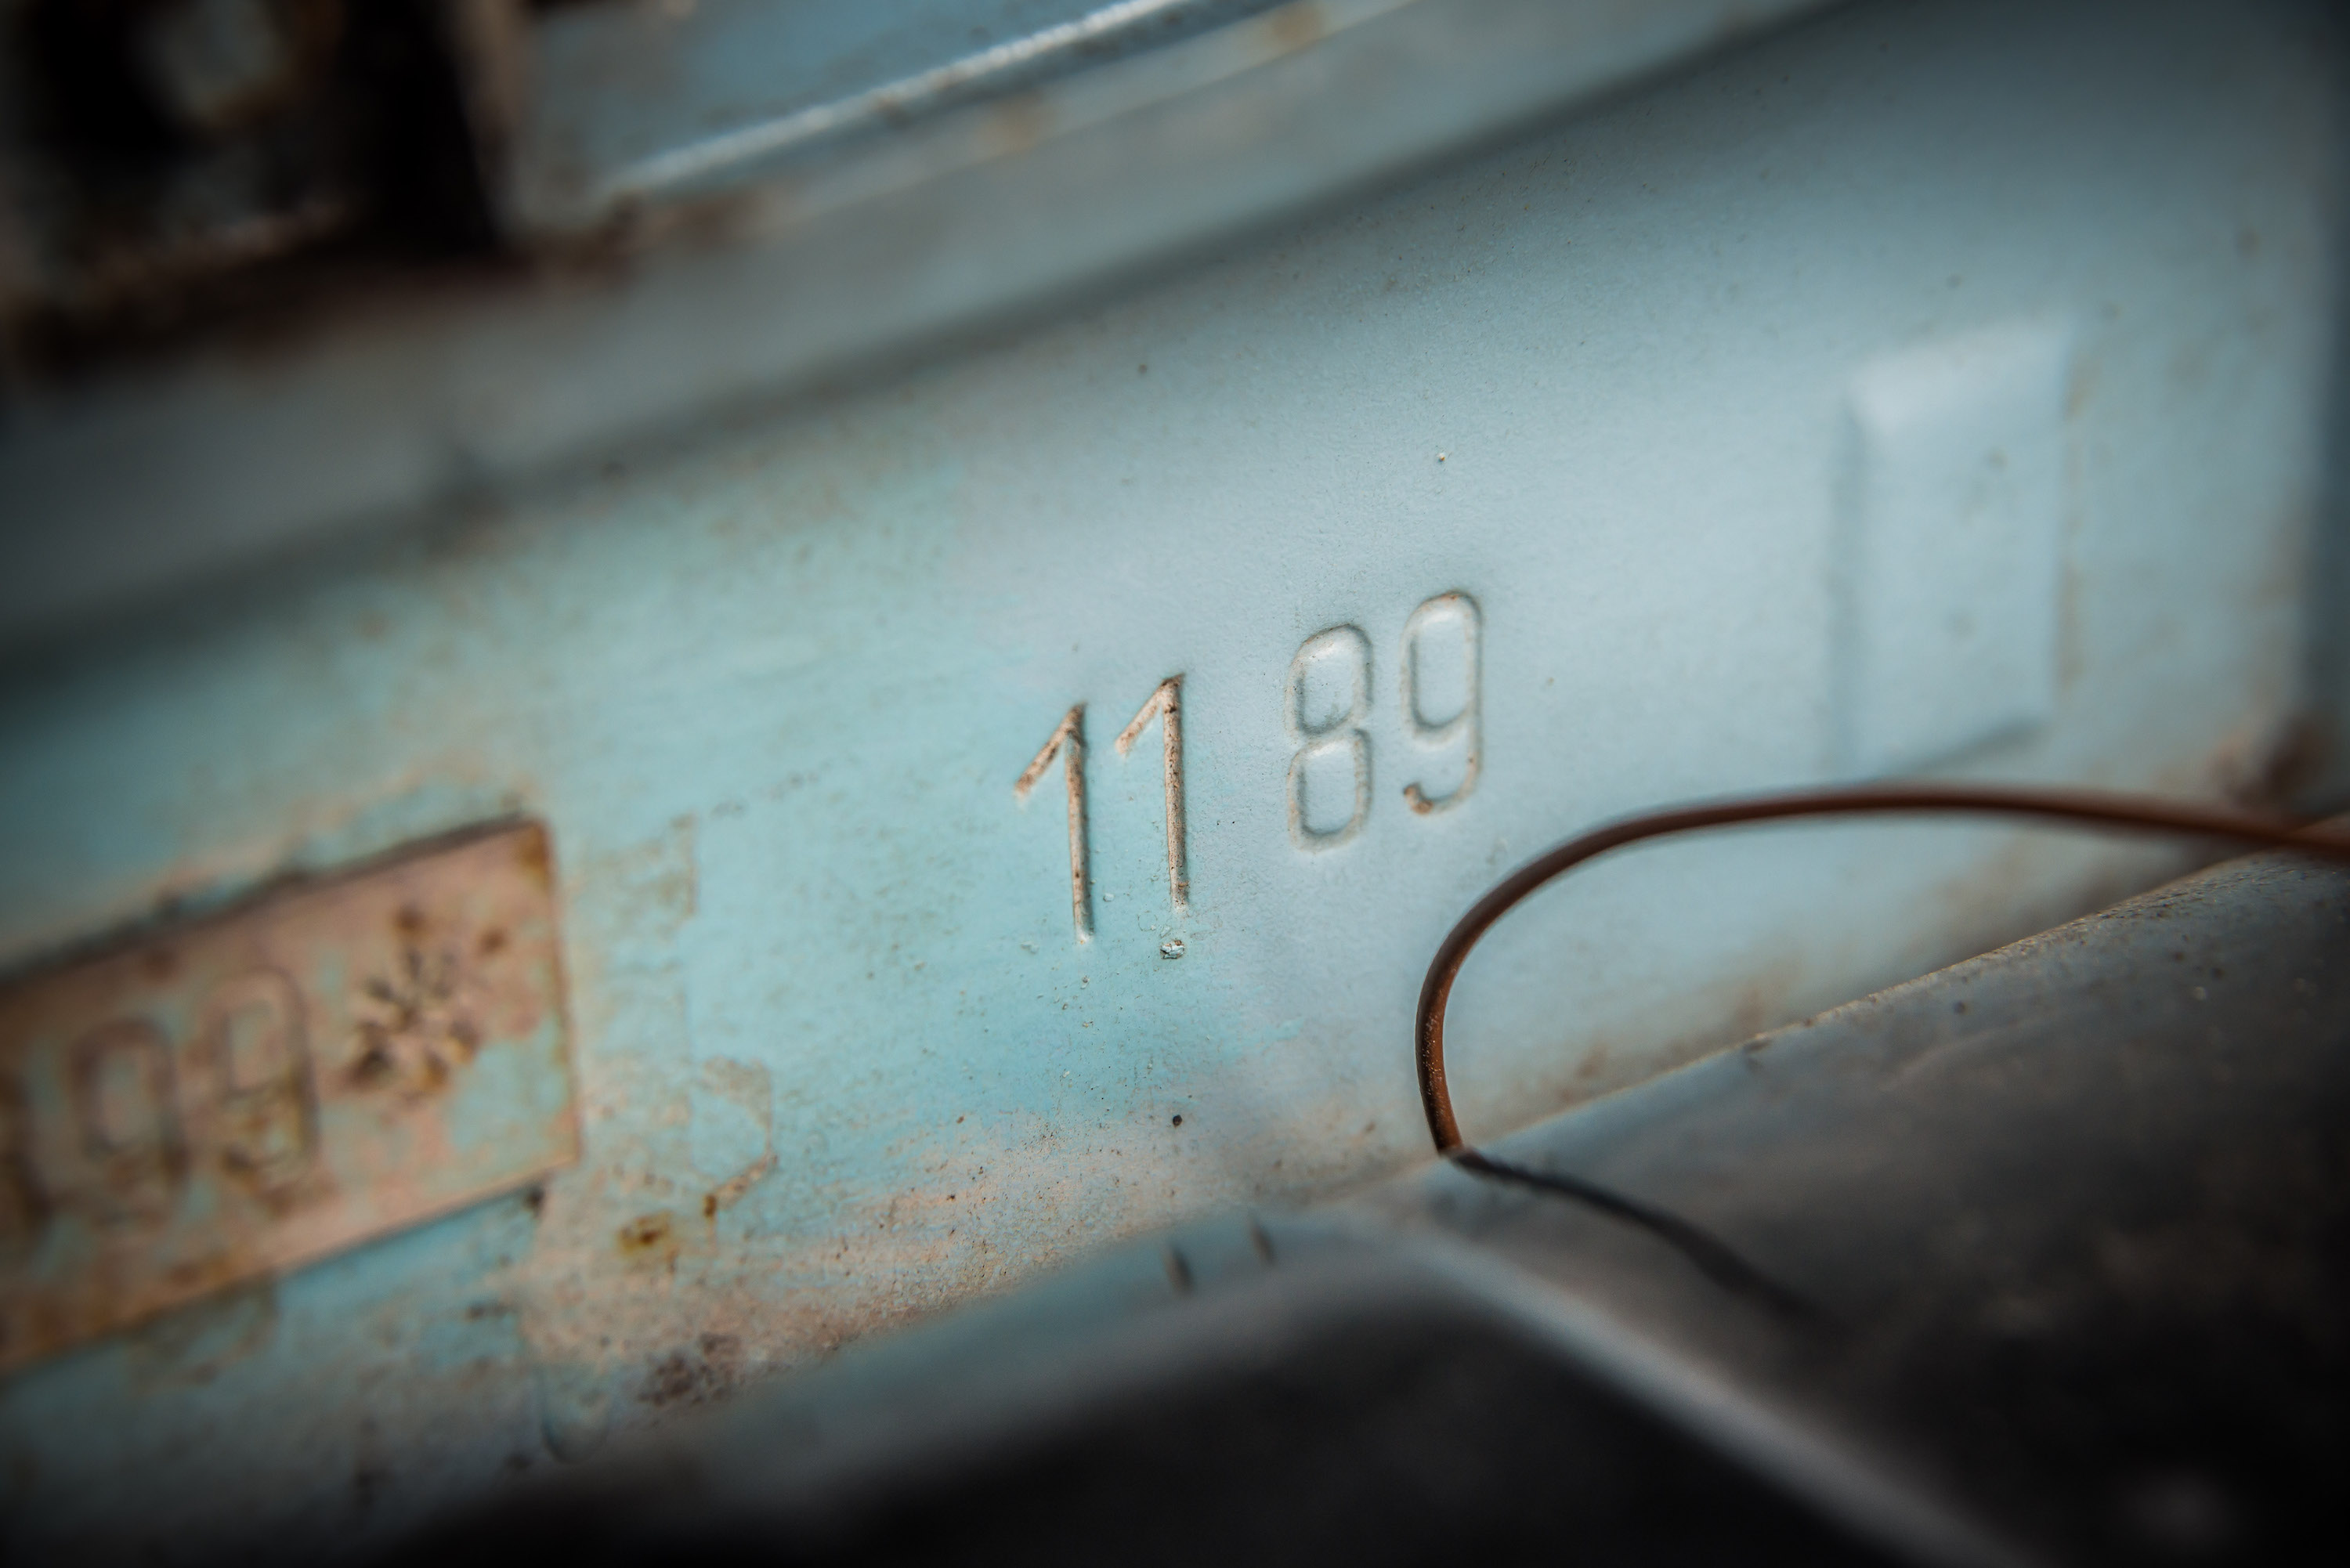 Trabant P601 date stamp